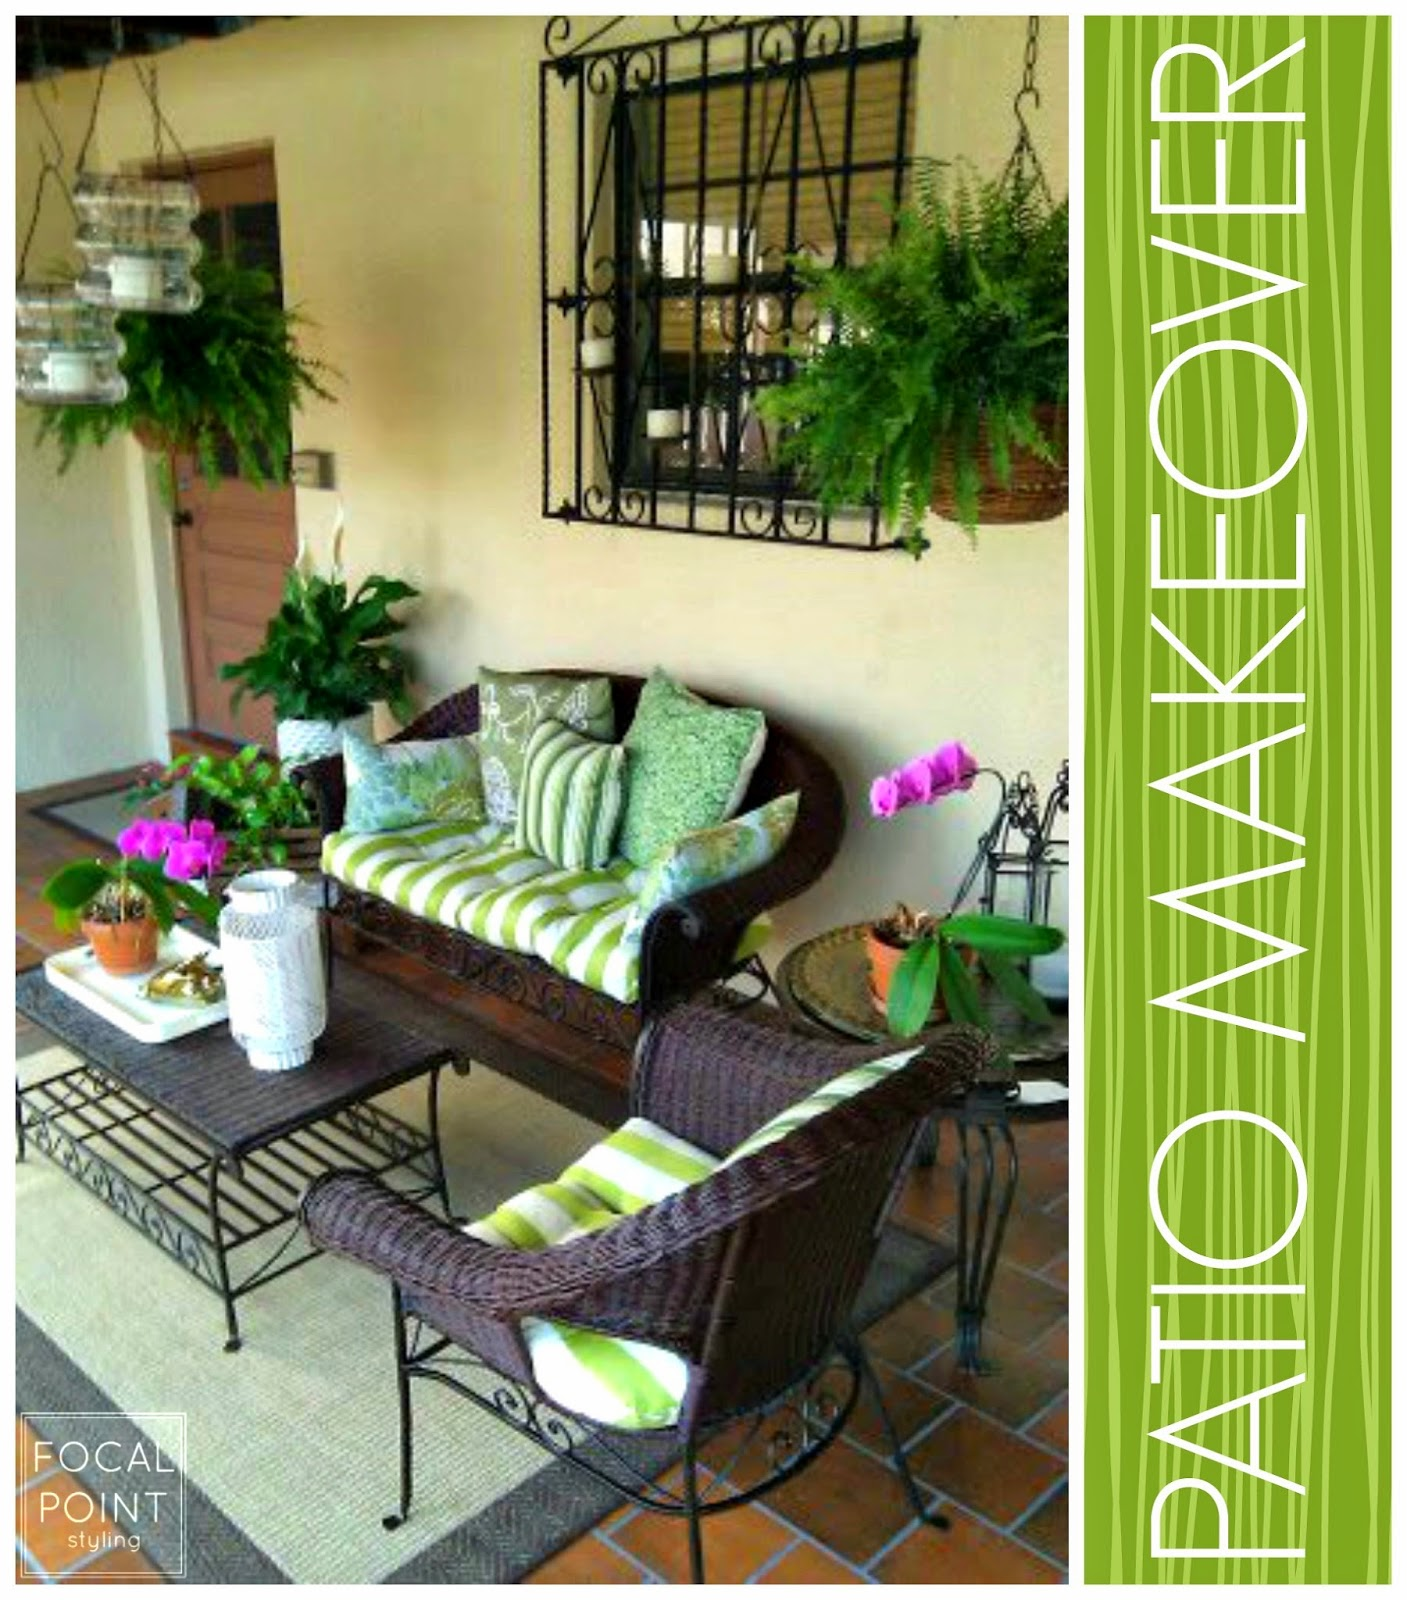 FOCAL POINT STYLING: MIXING OLD & NEW FOR A PATIO MAKEOVER